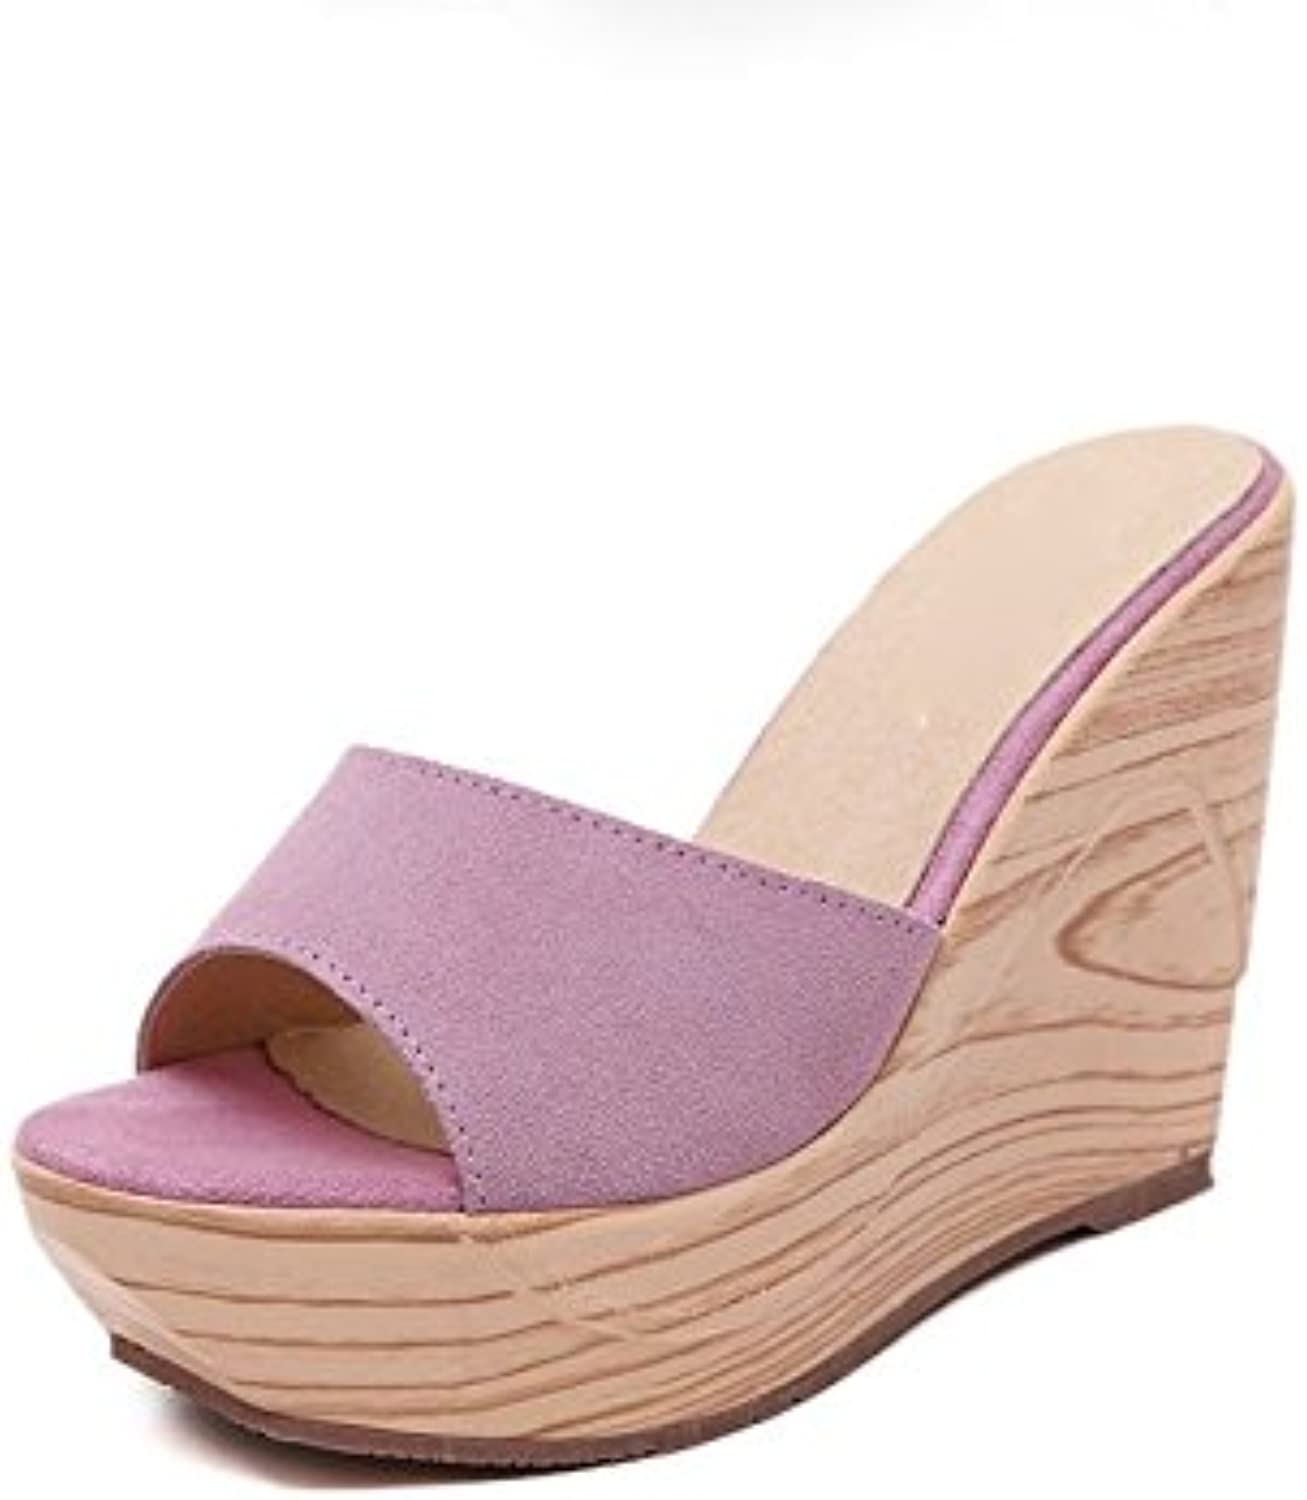 Weiwei Women's Sandals and Slippers, 12cm Super High Heels Summer Thick-Soled Casual Sandals and Slippers